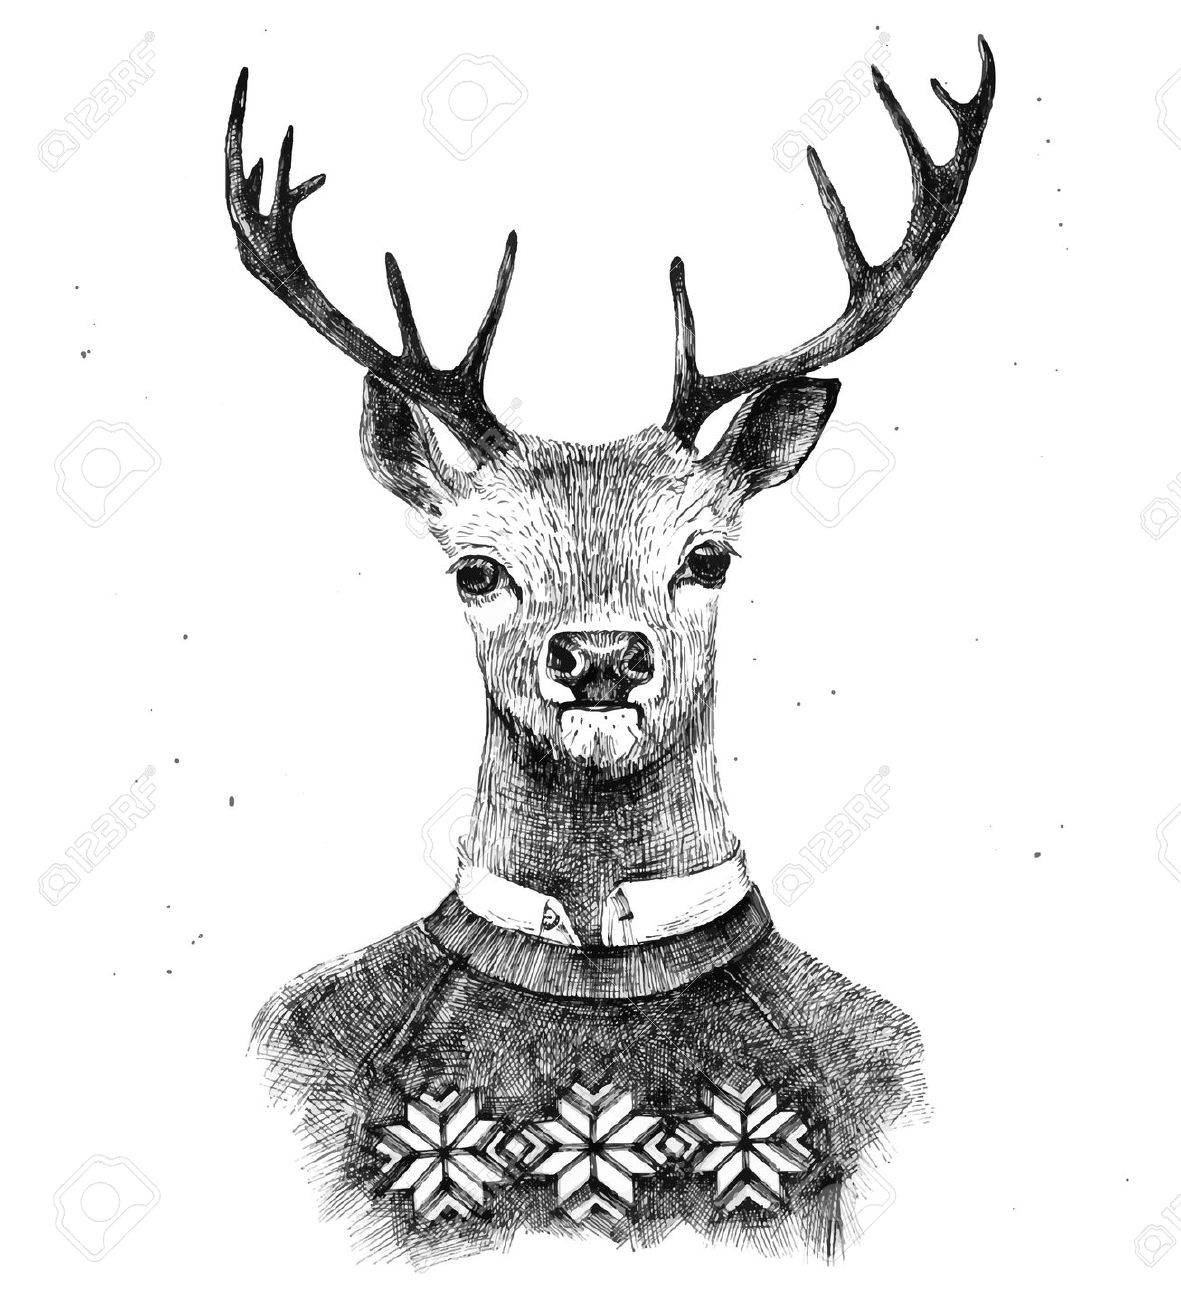 hand drawn deer portrait in kneated sweater - 42419437